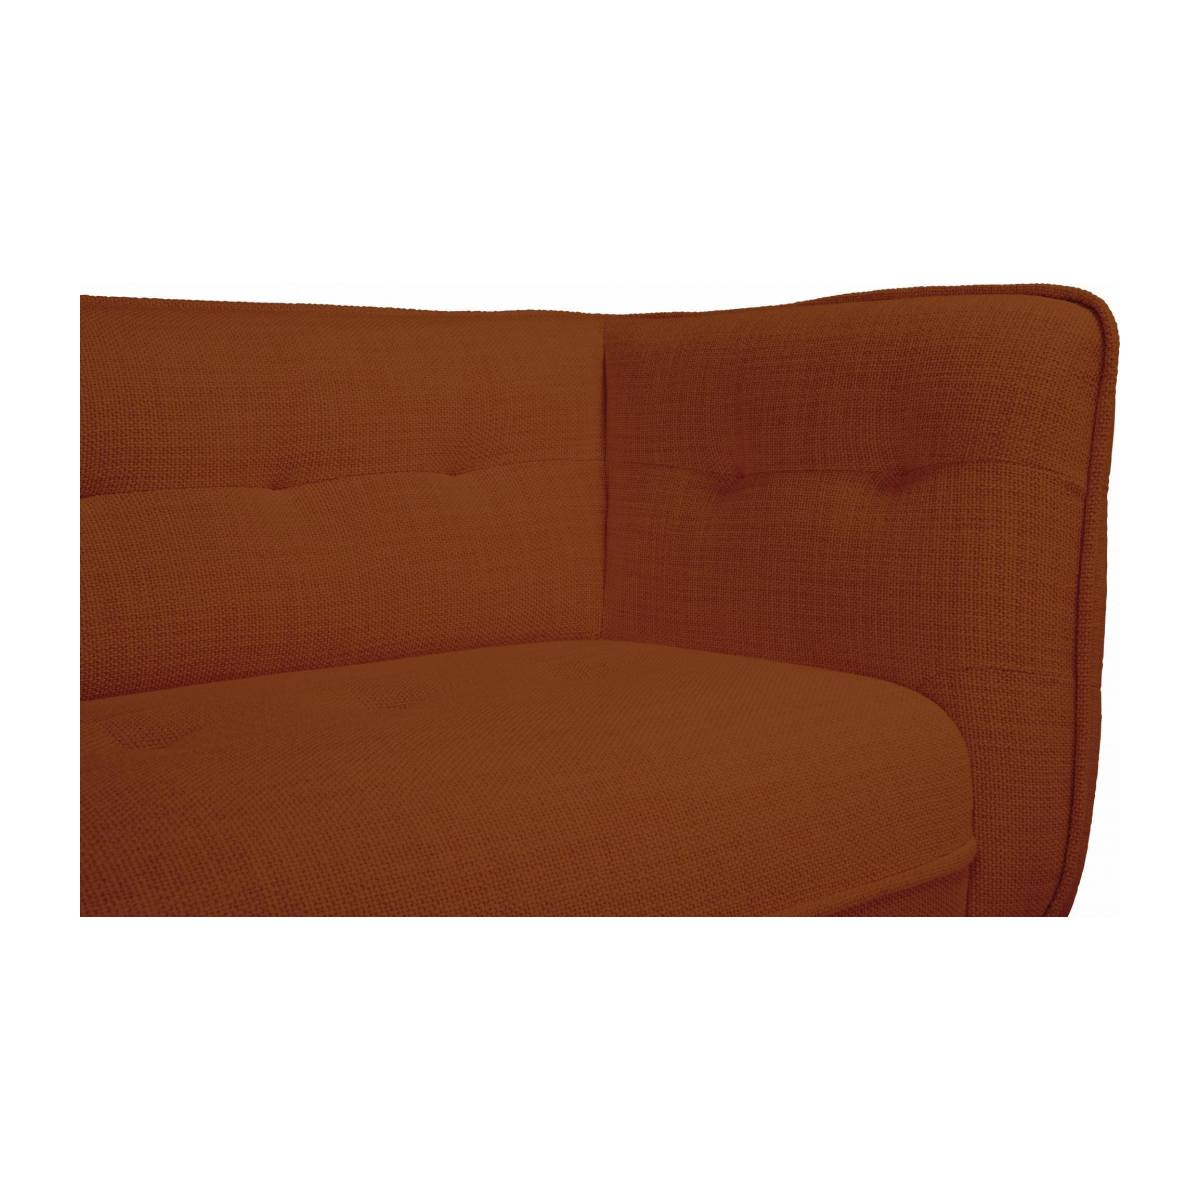 3 seater sofa in Fasoli fabric, warm red rock and dark legs n°6